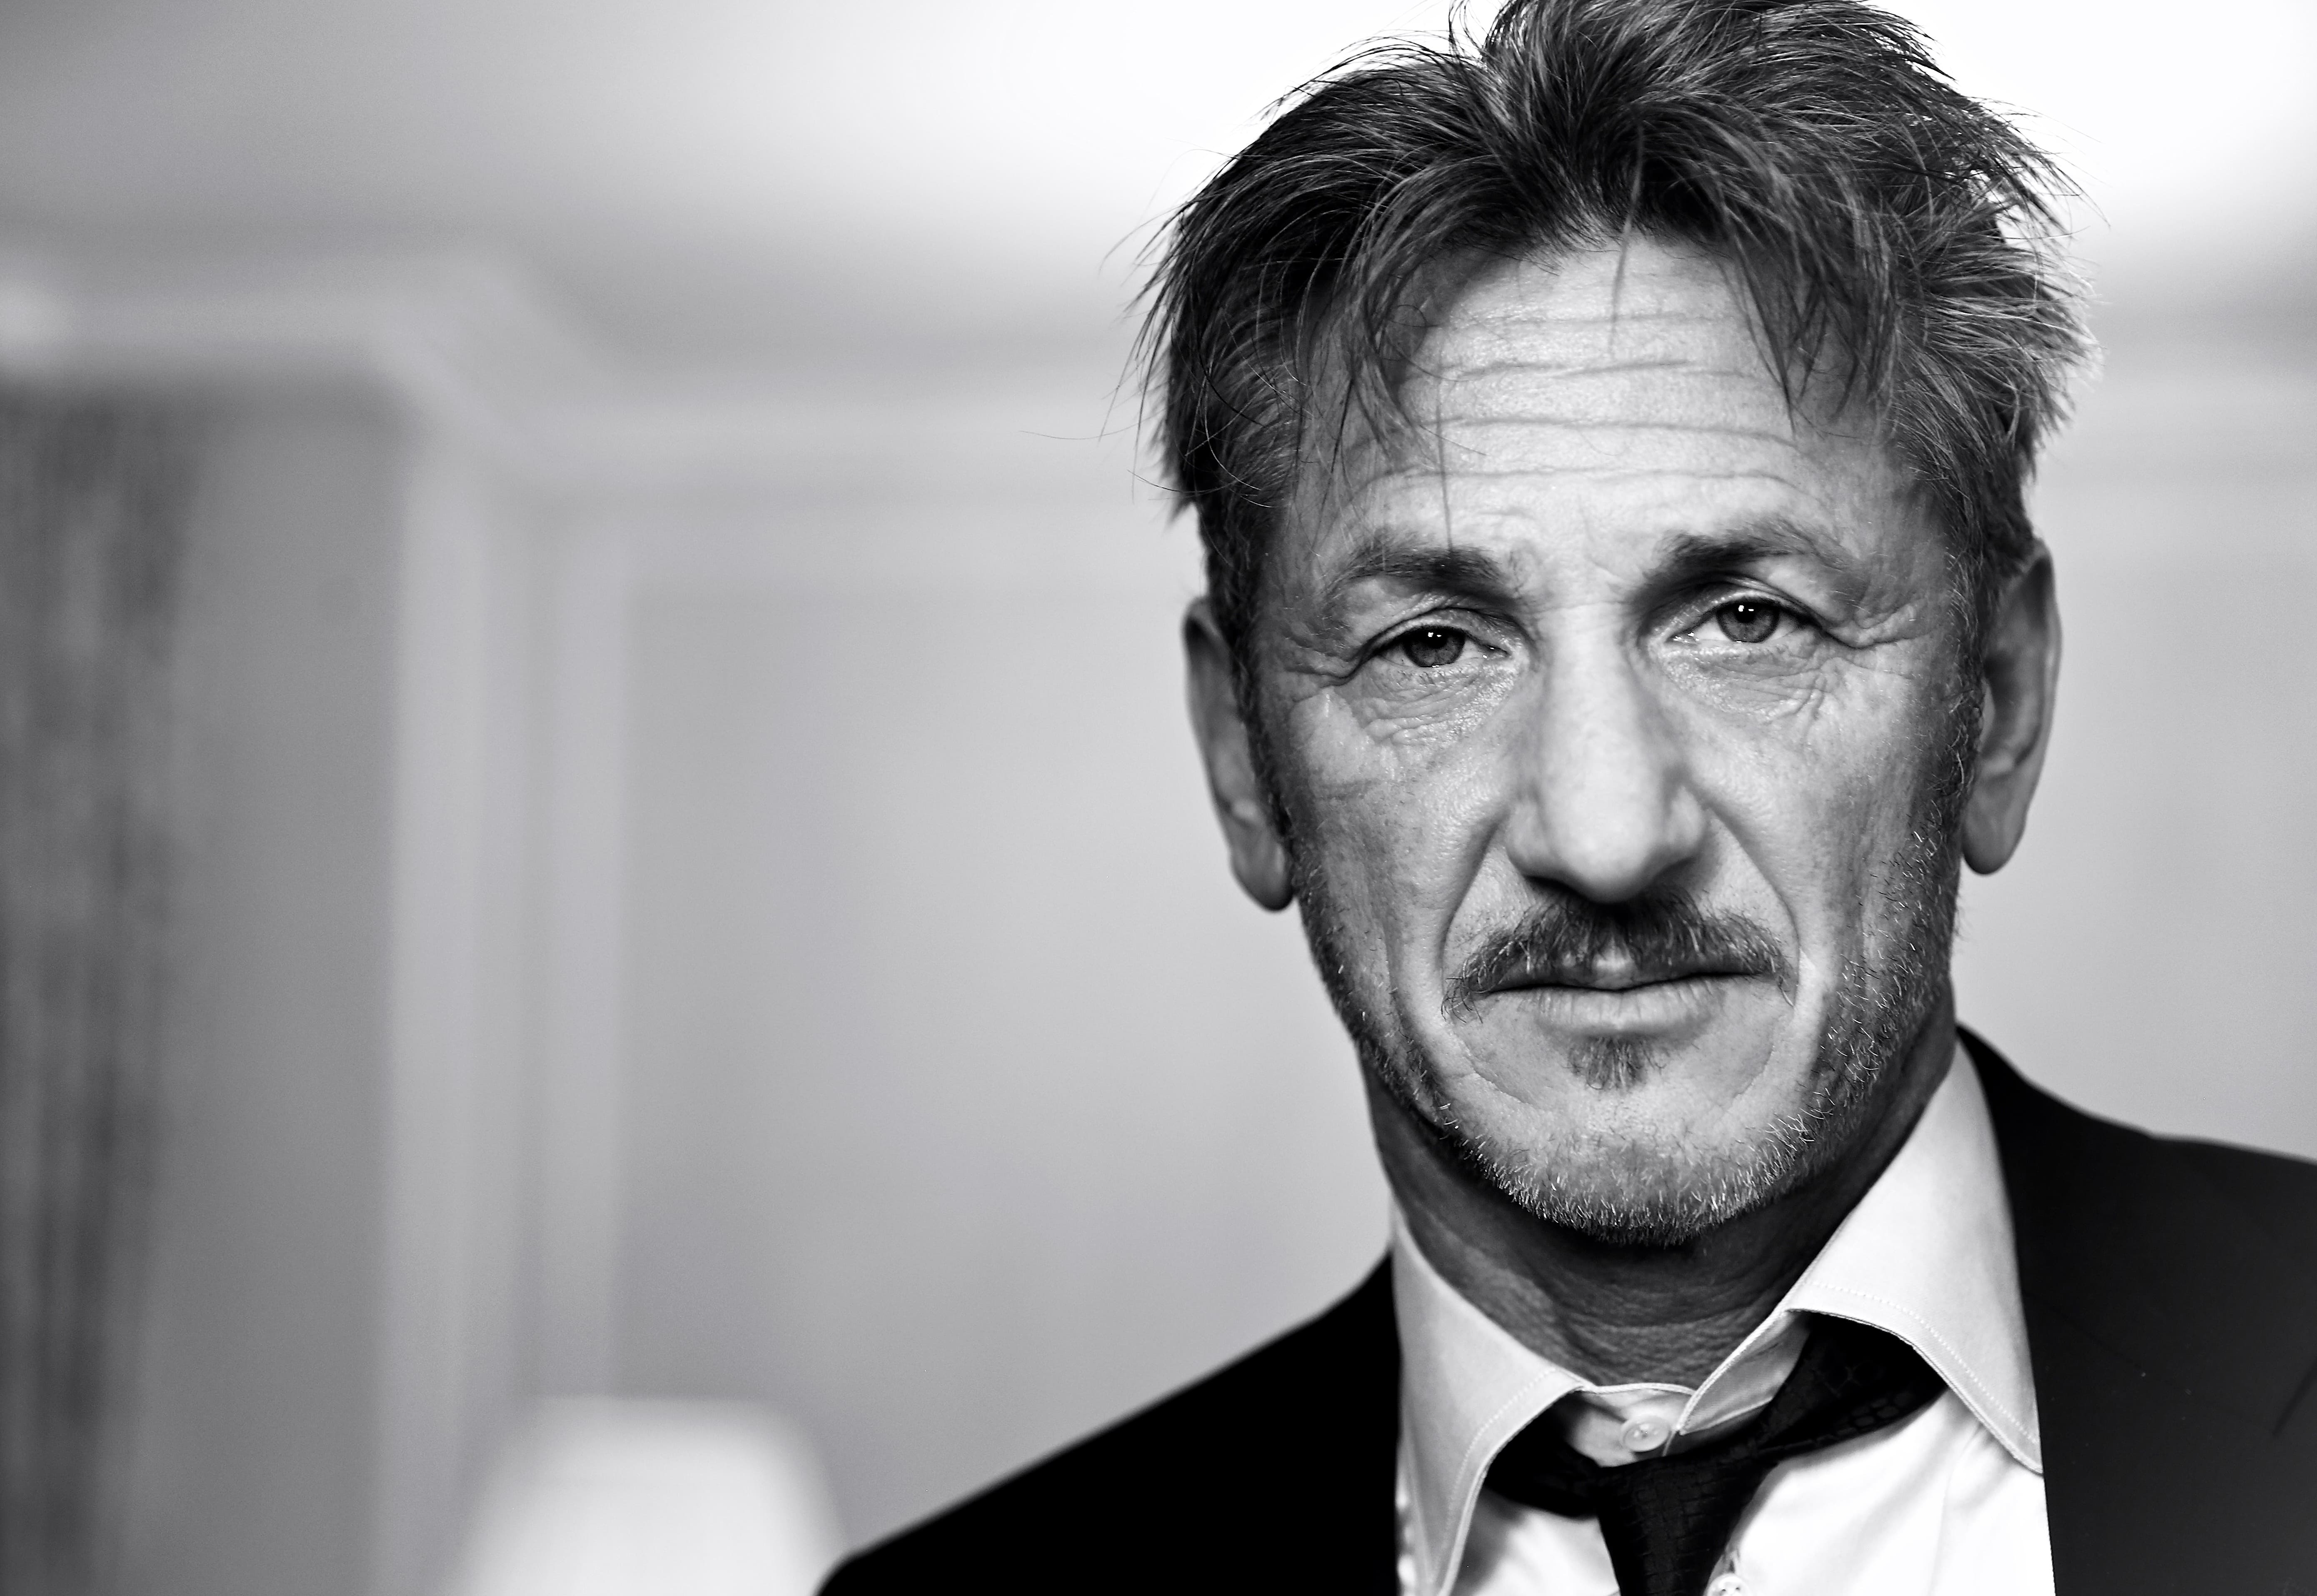 Sean Penn Background